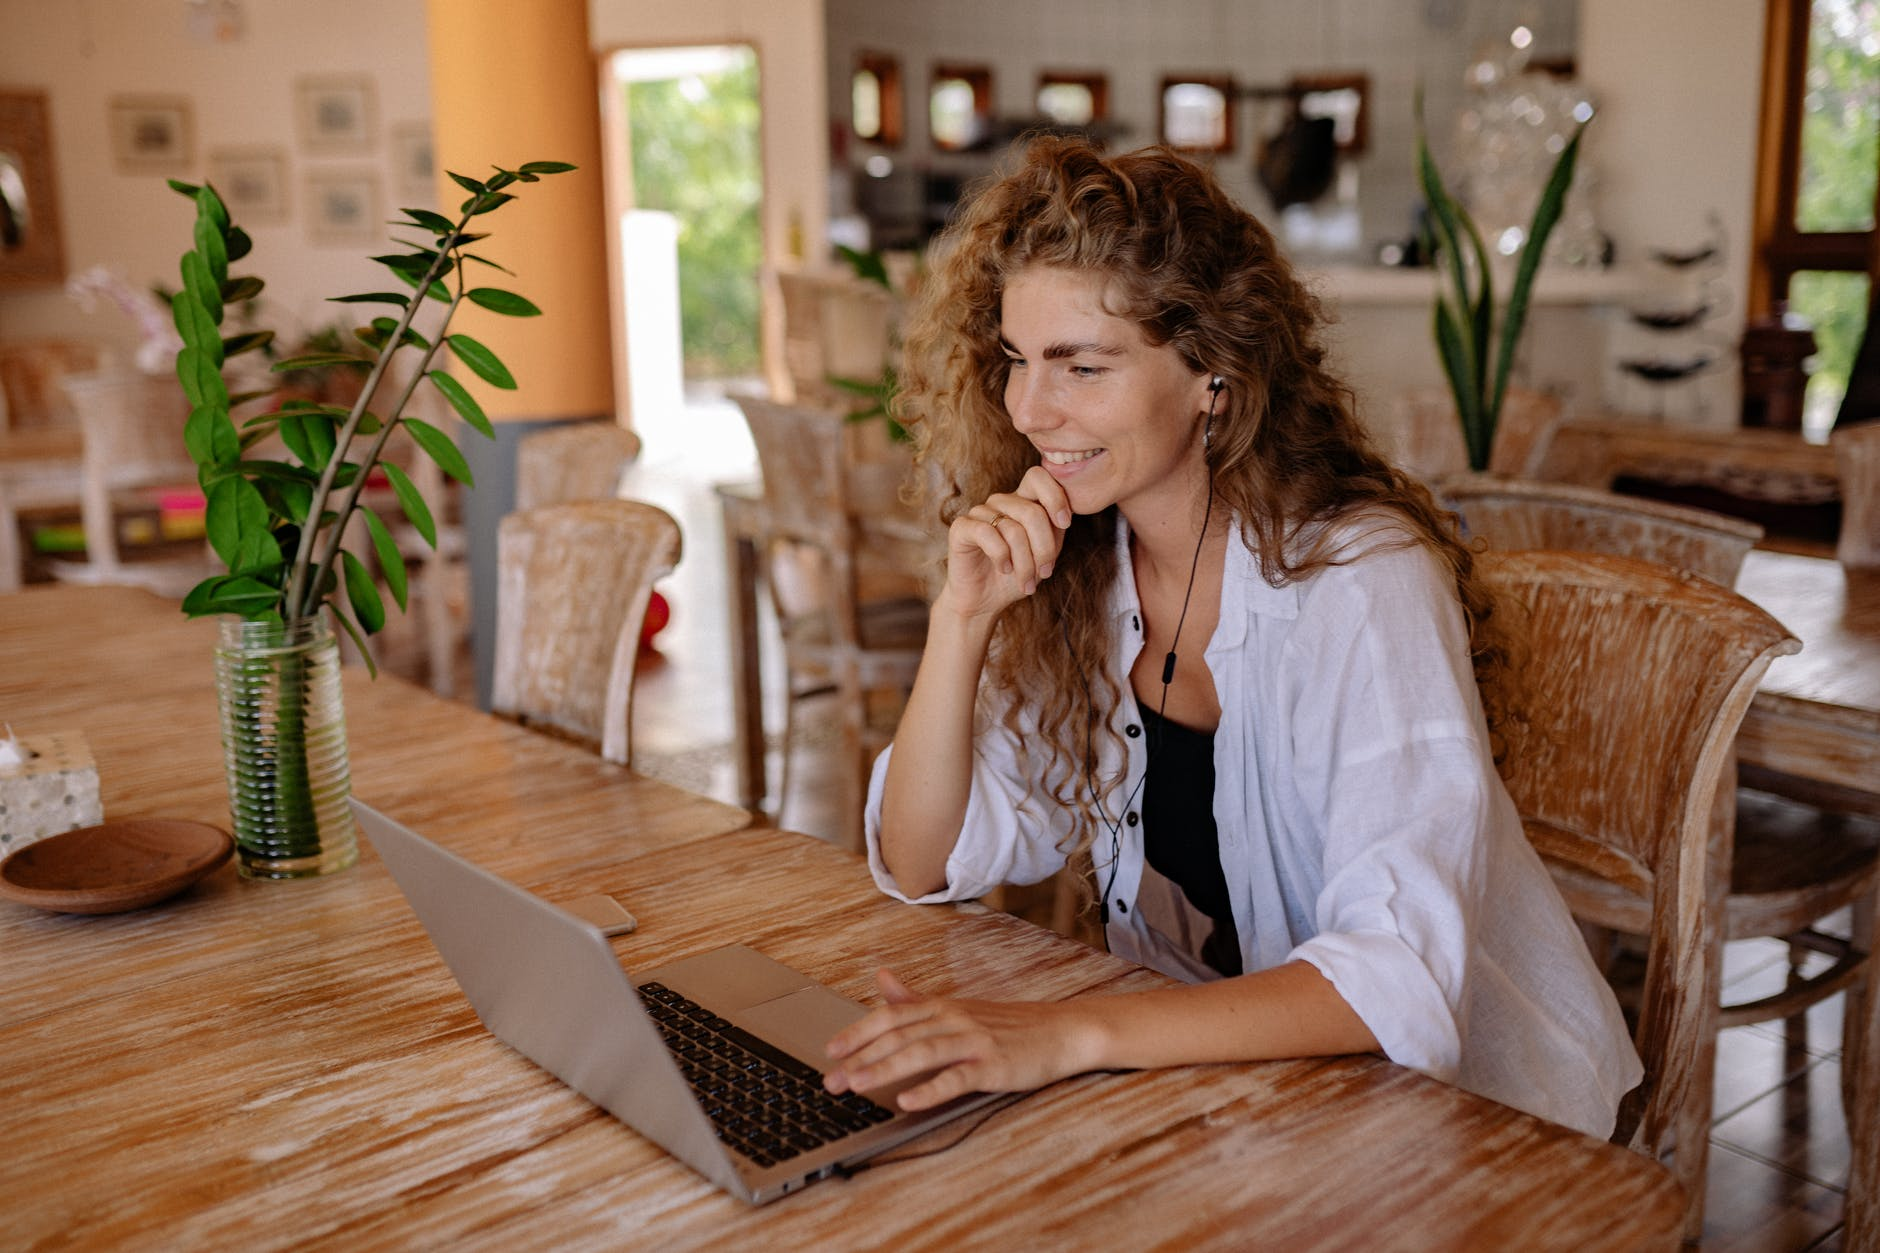 woman in white dress shirt using laptop computer